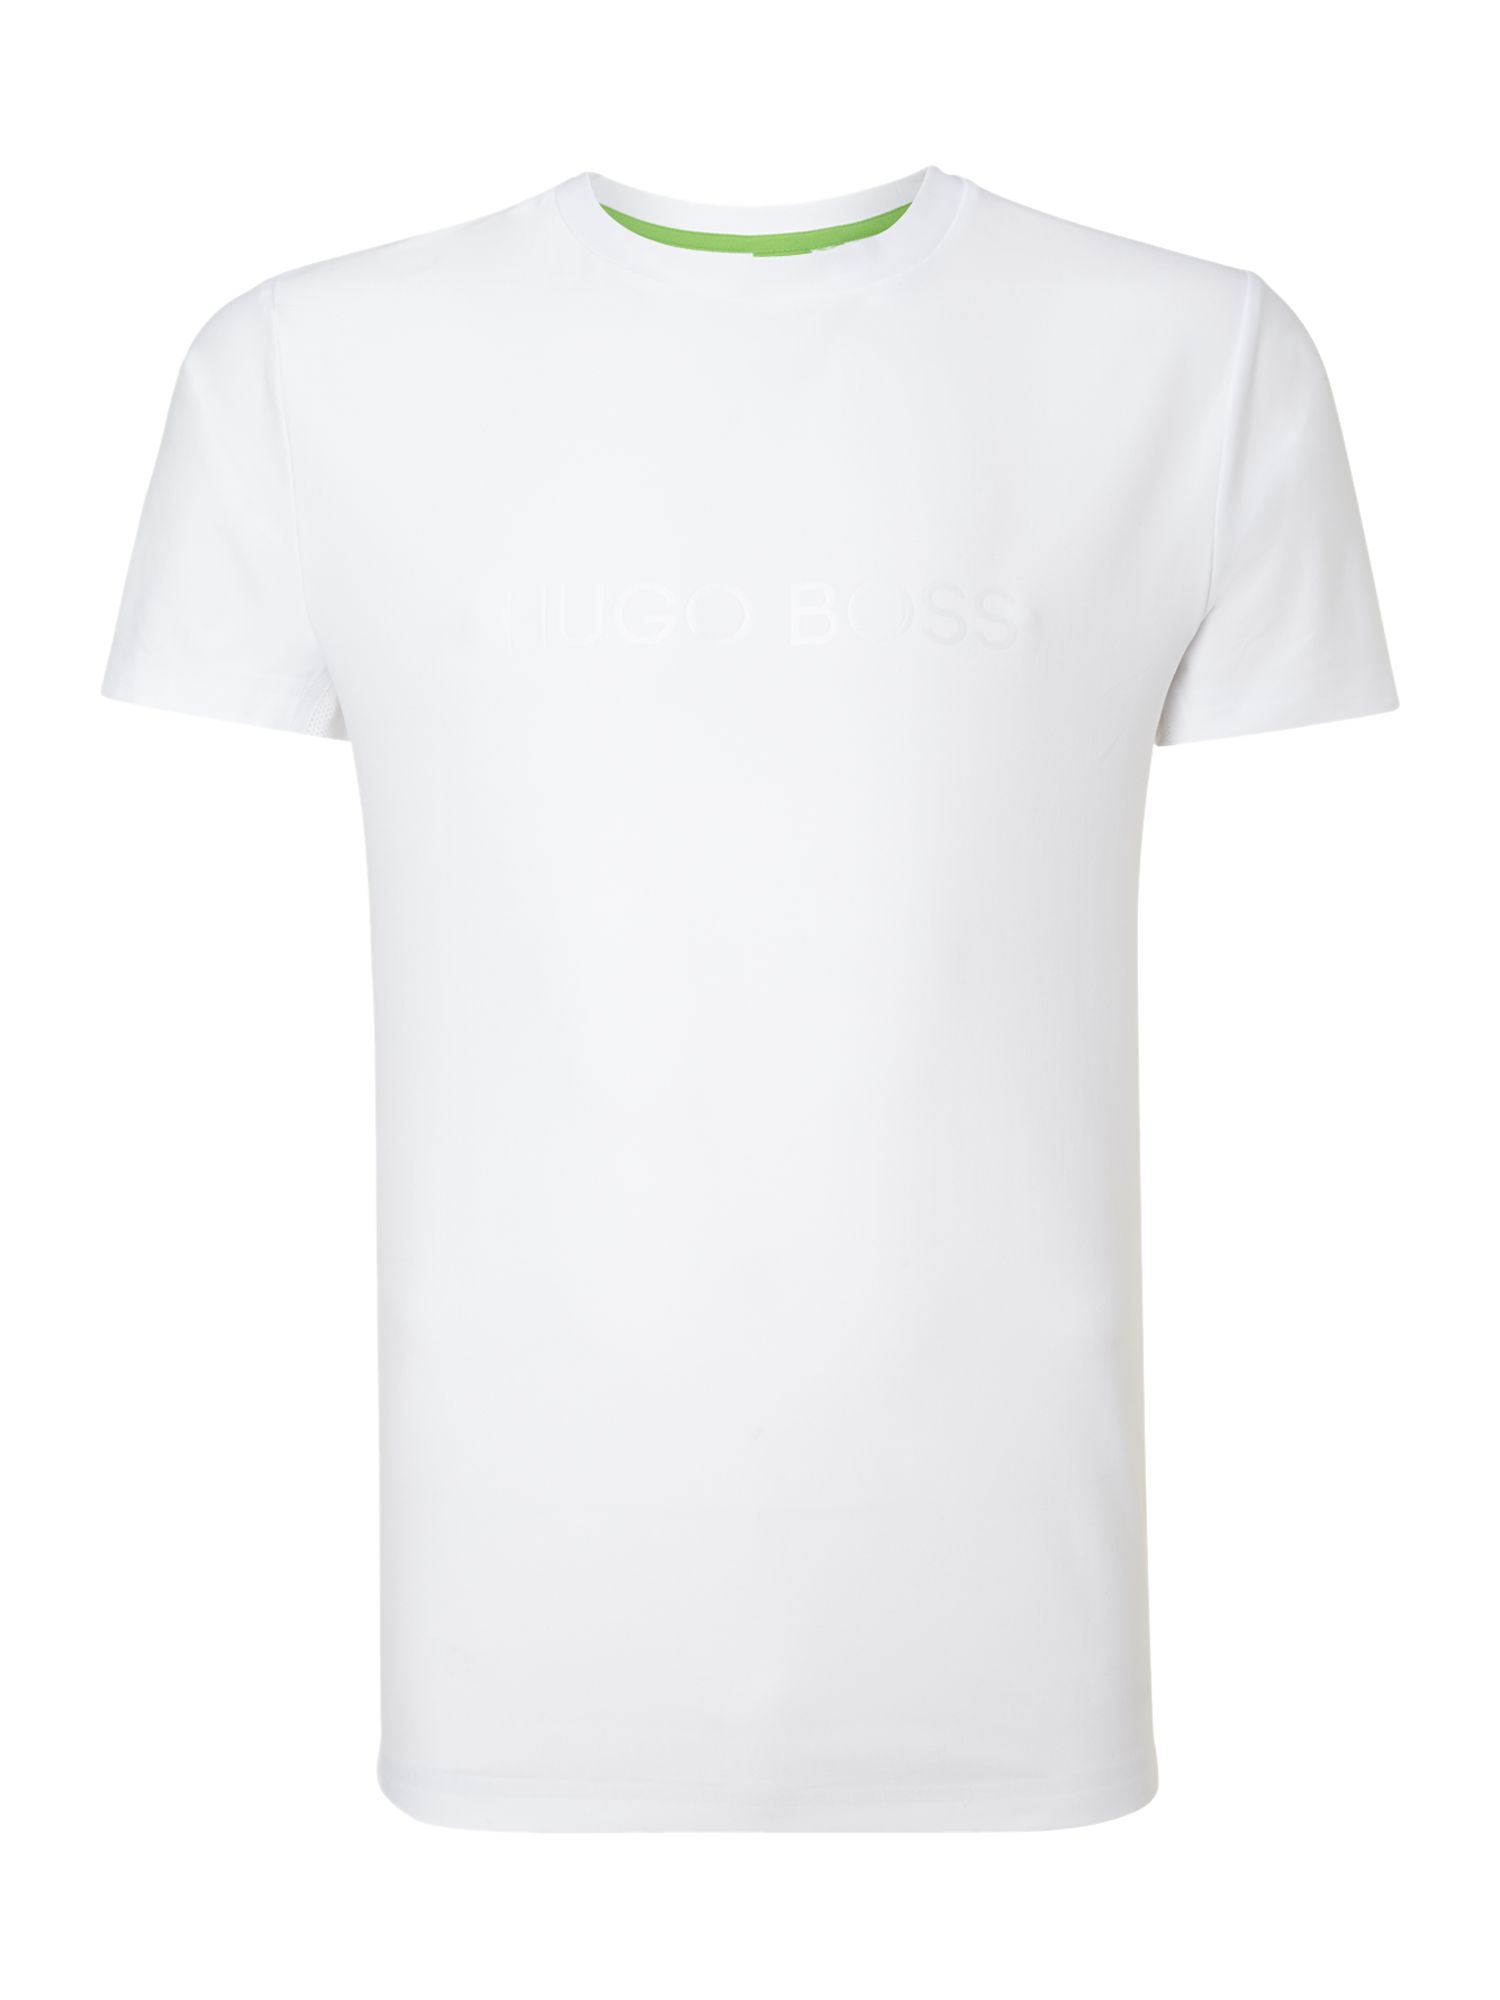 Tianox active t-shirt